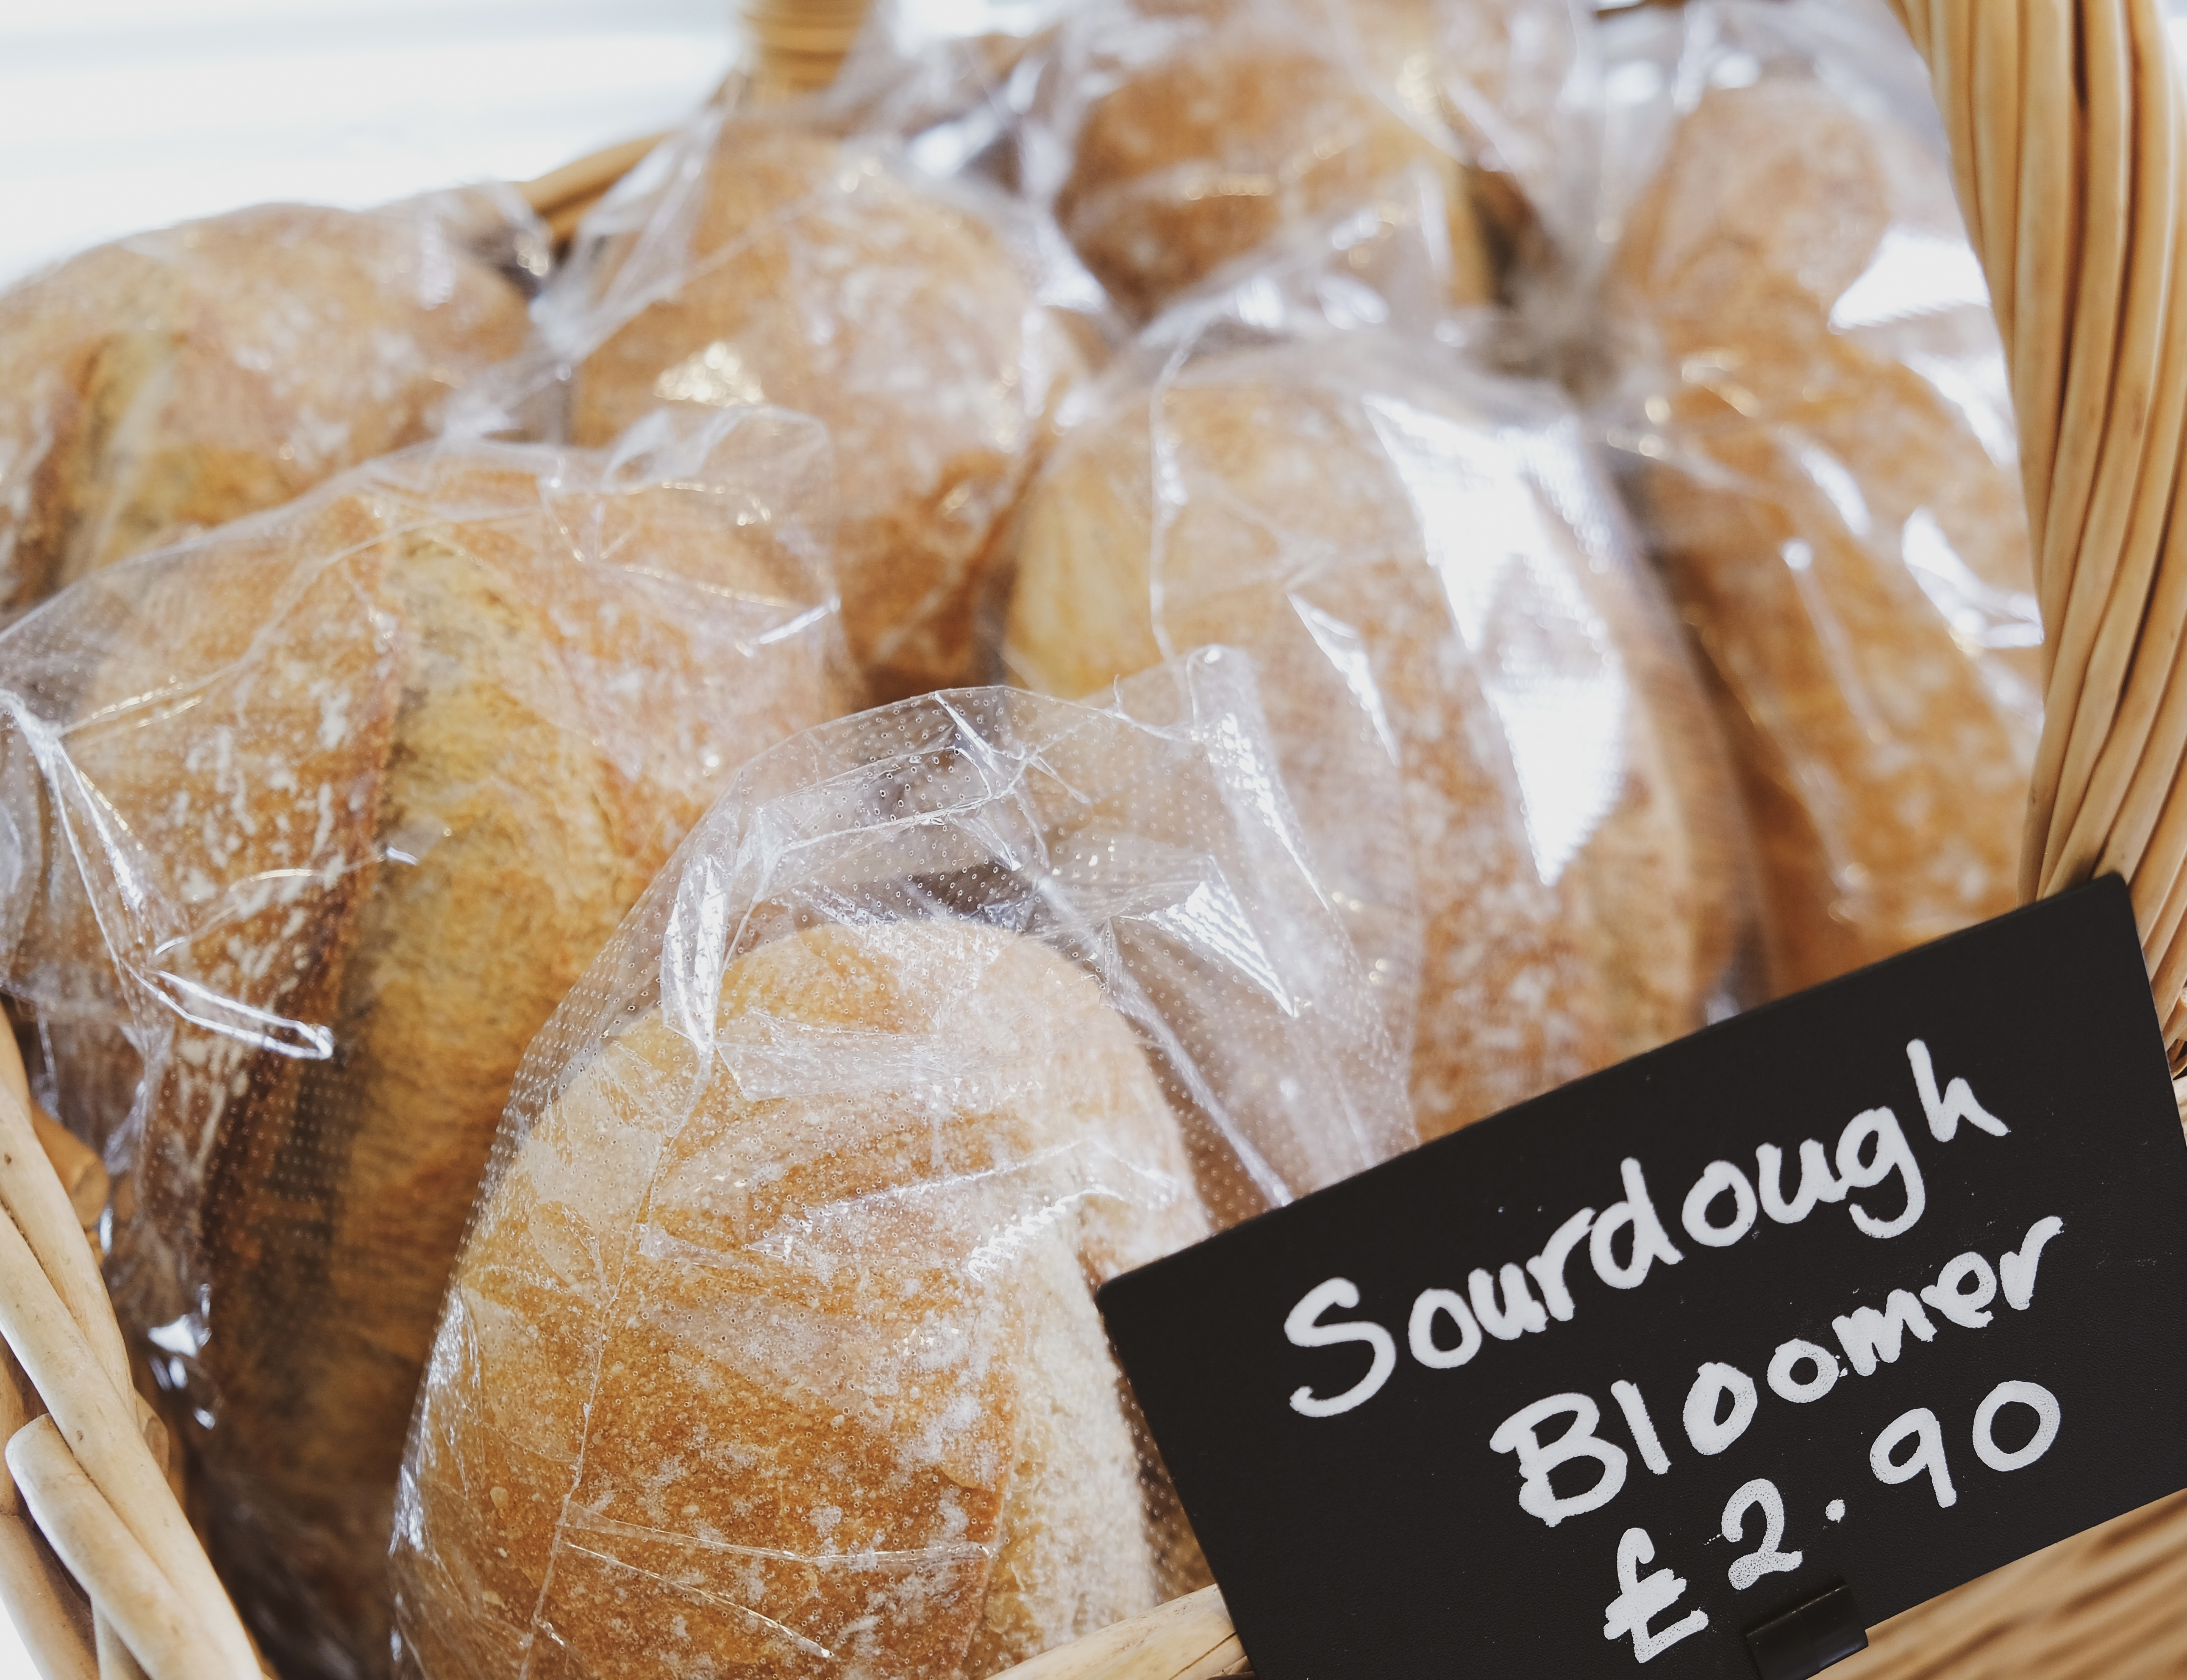 Fresh Sourdough bread available daily at the Essex Produce Co. Kelvedon, Essex.